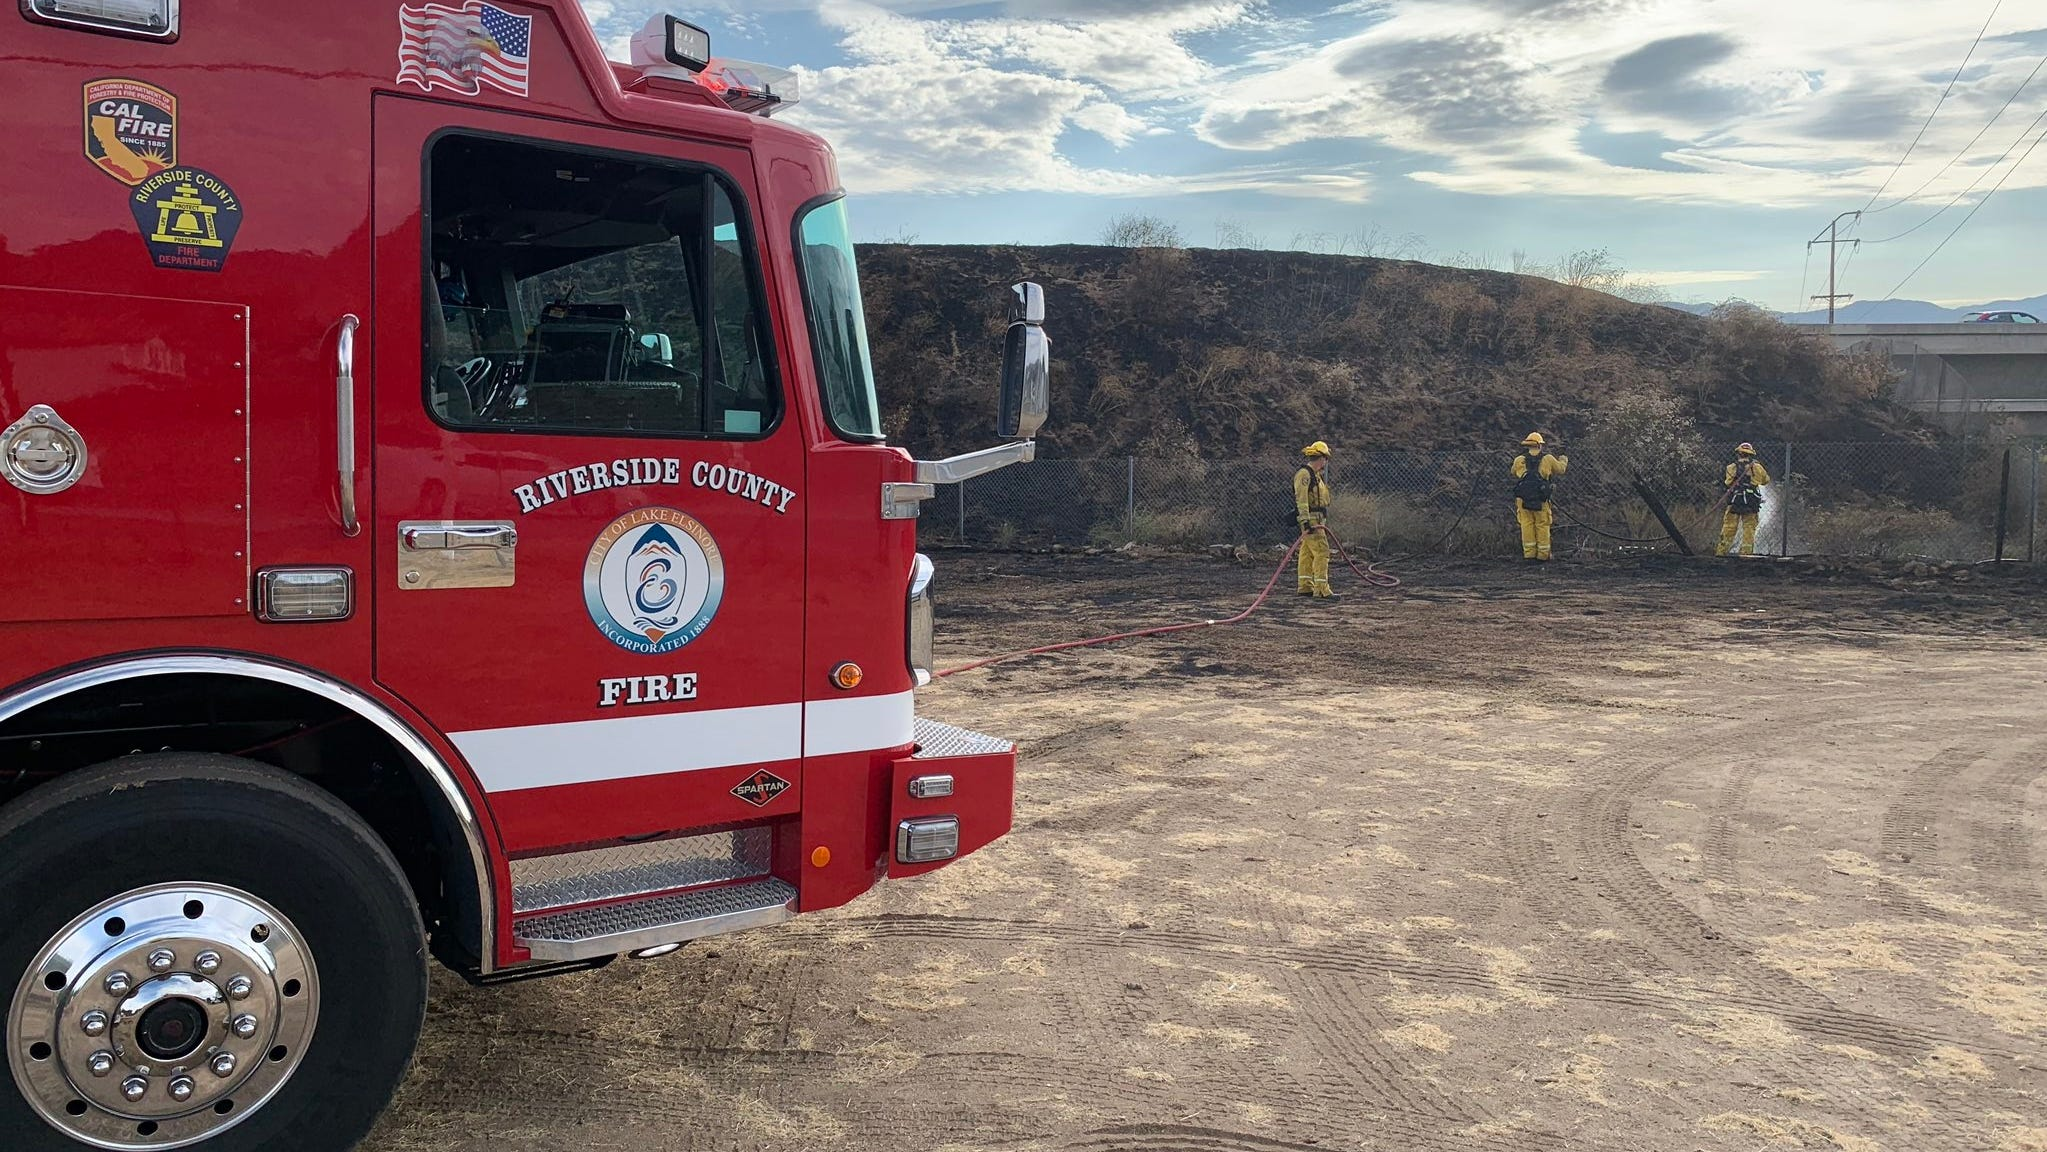 Seven Cal Fire firefighters from Riverside County have tested positive for COVID-19, as of Oct. 30, 2020.